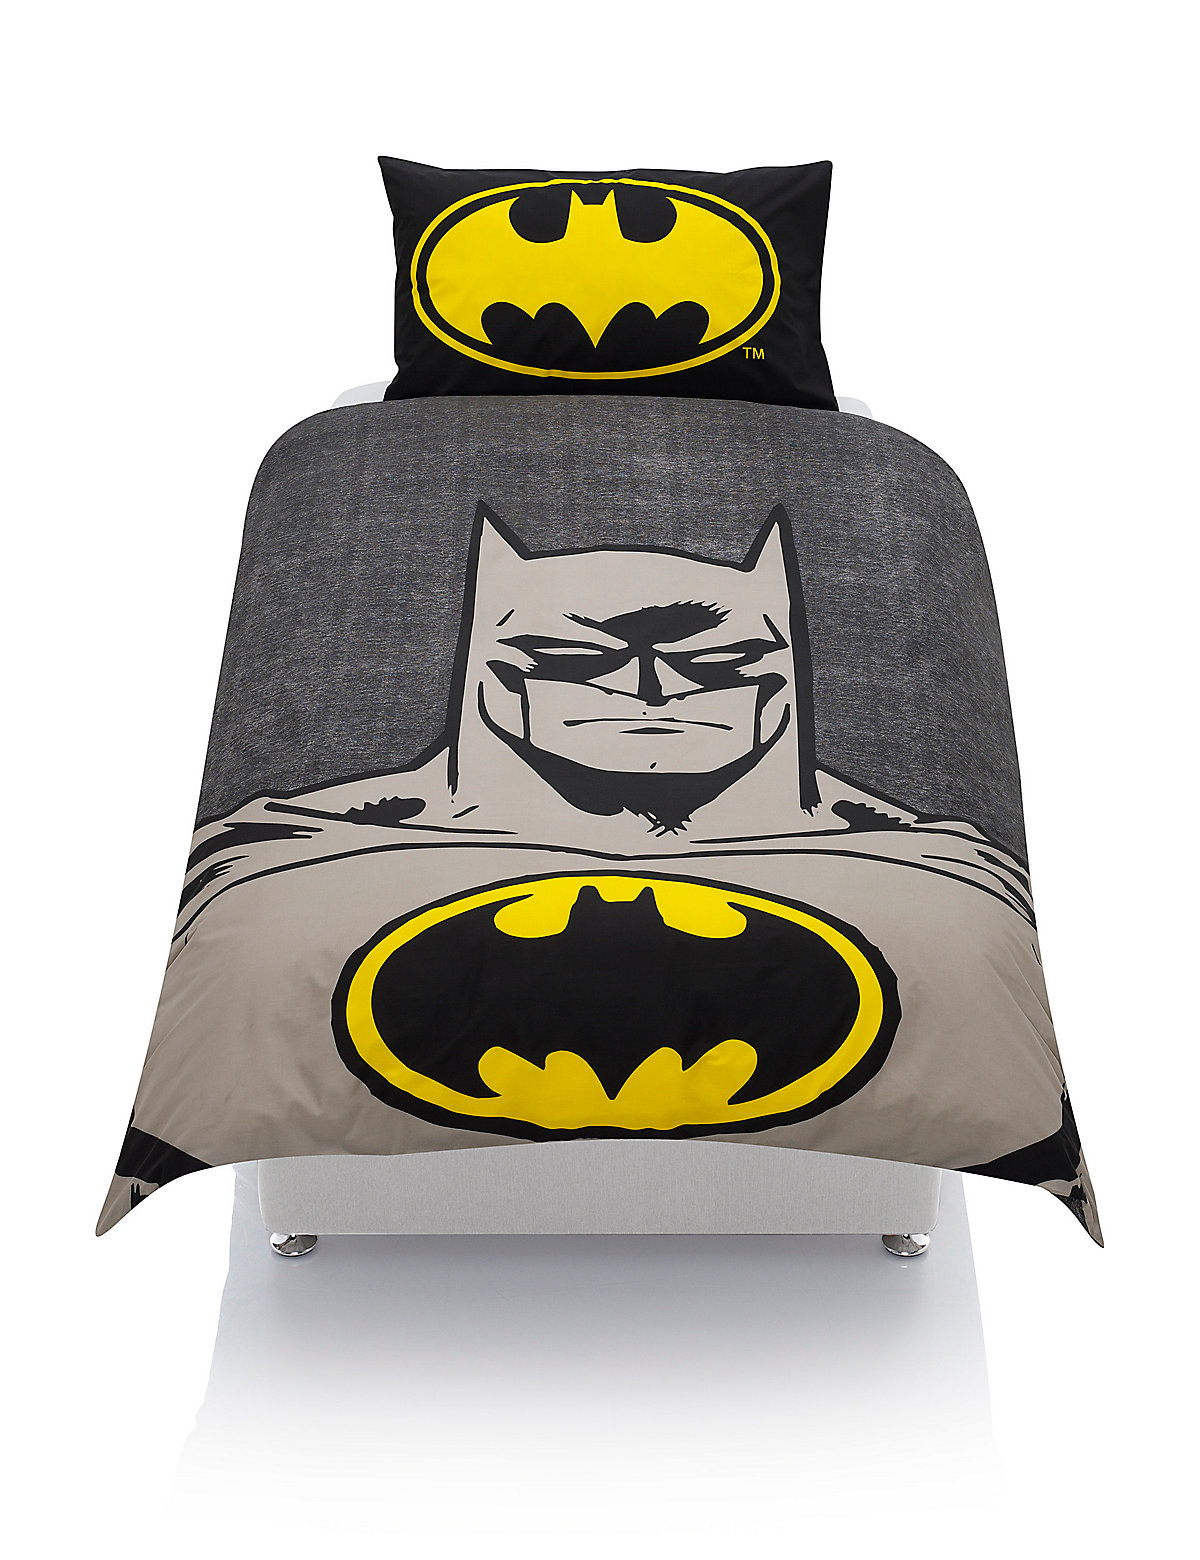 Buy cheap Batman bedding pare products prices for best UK deals